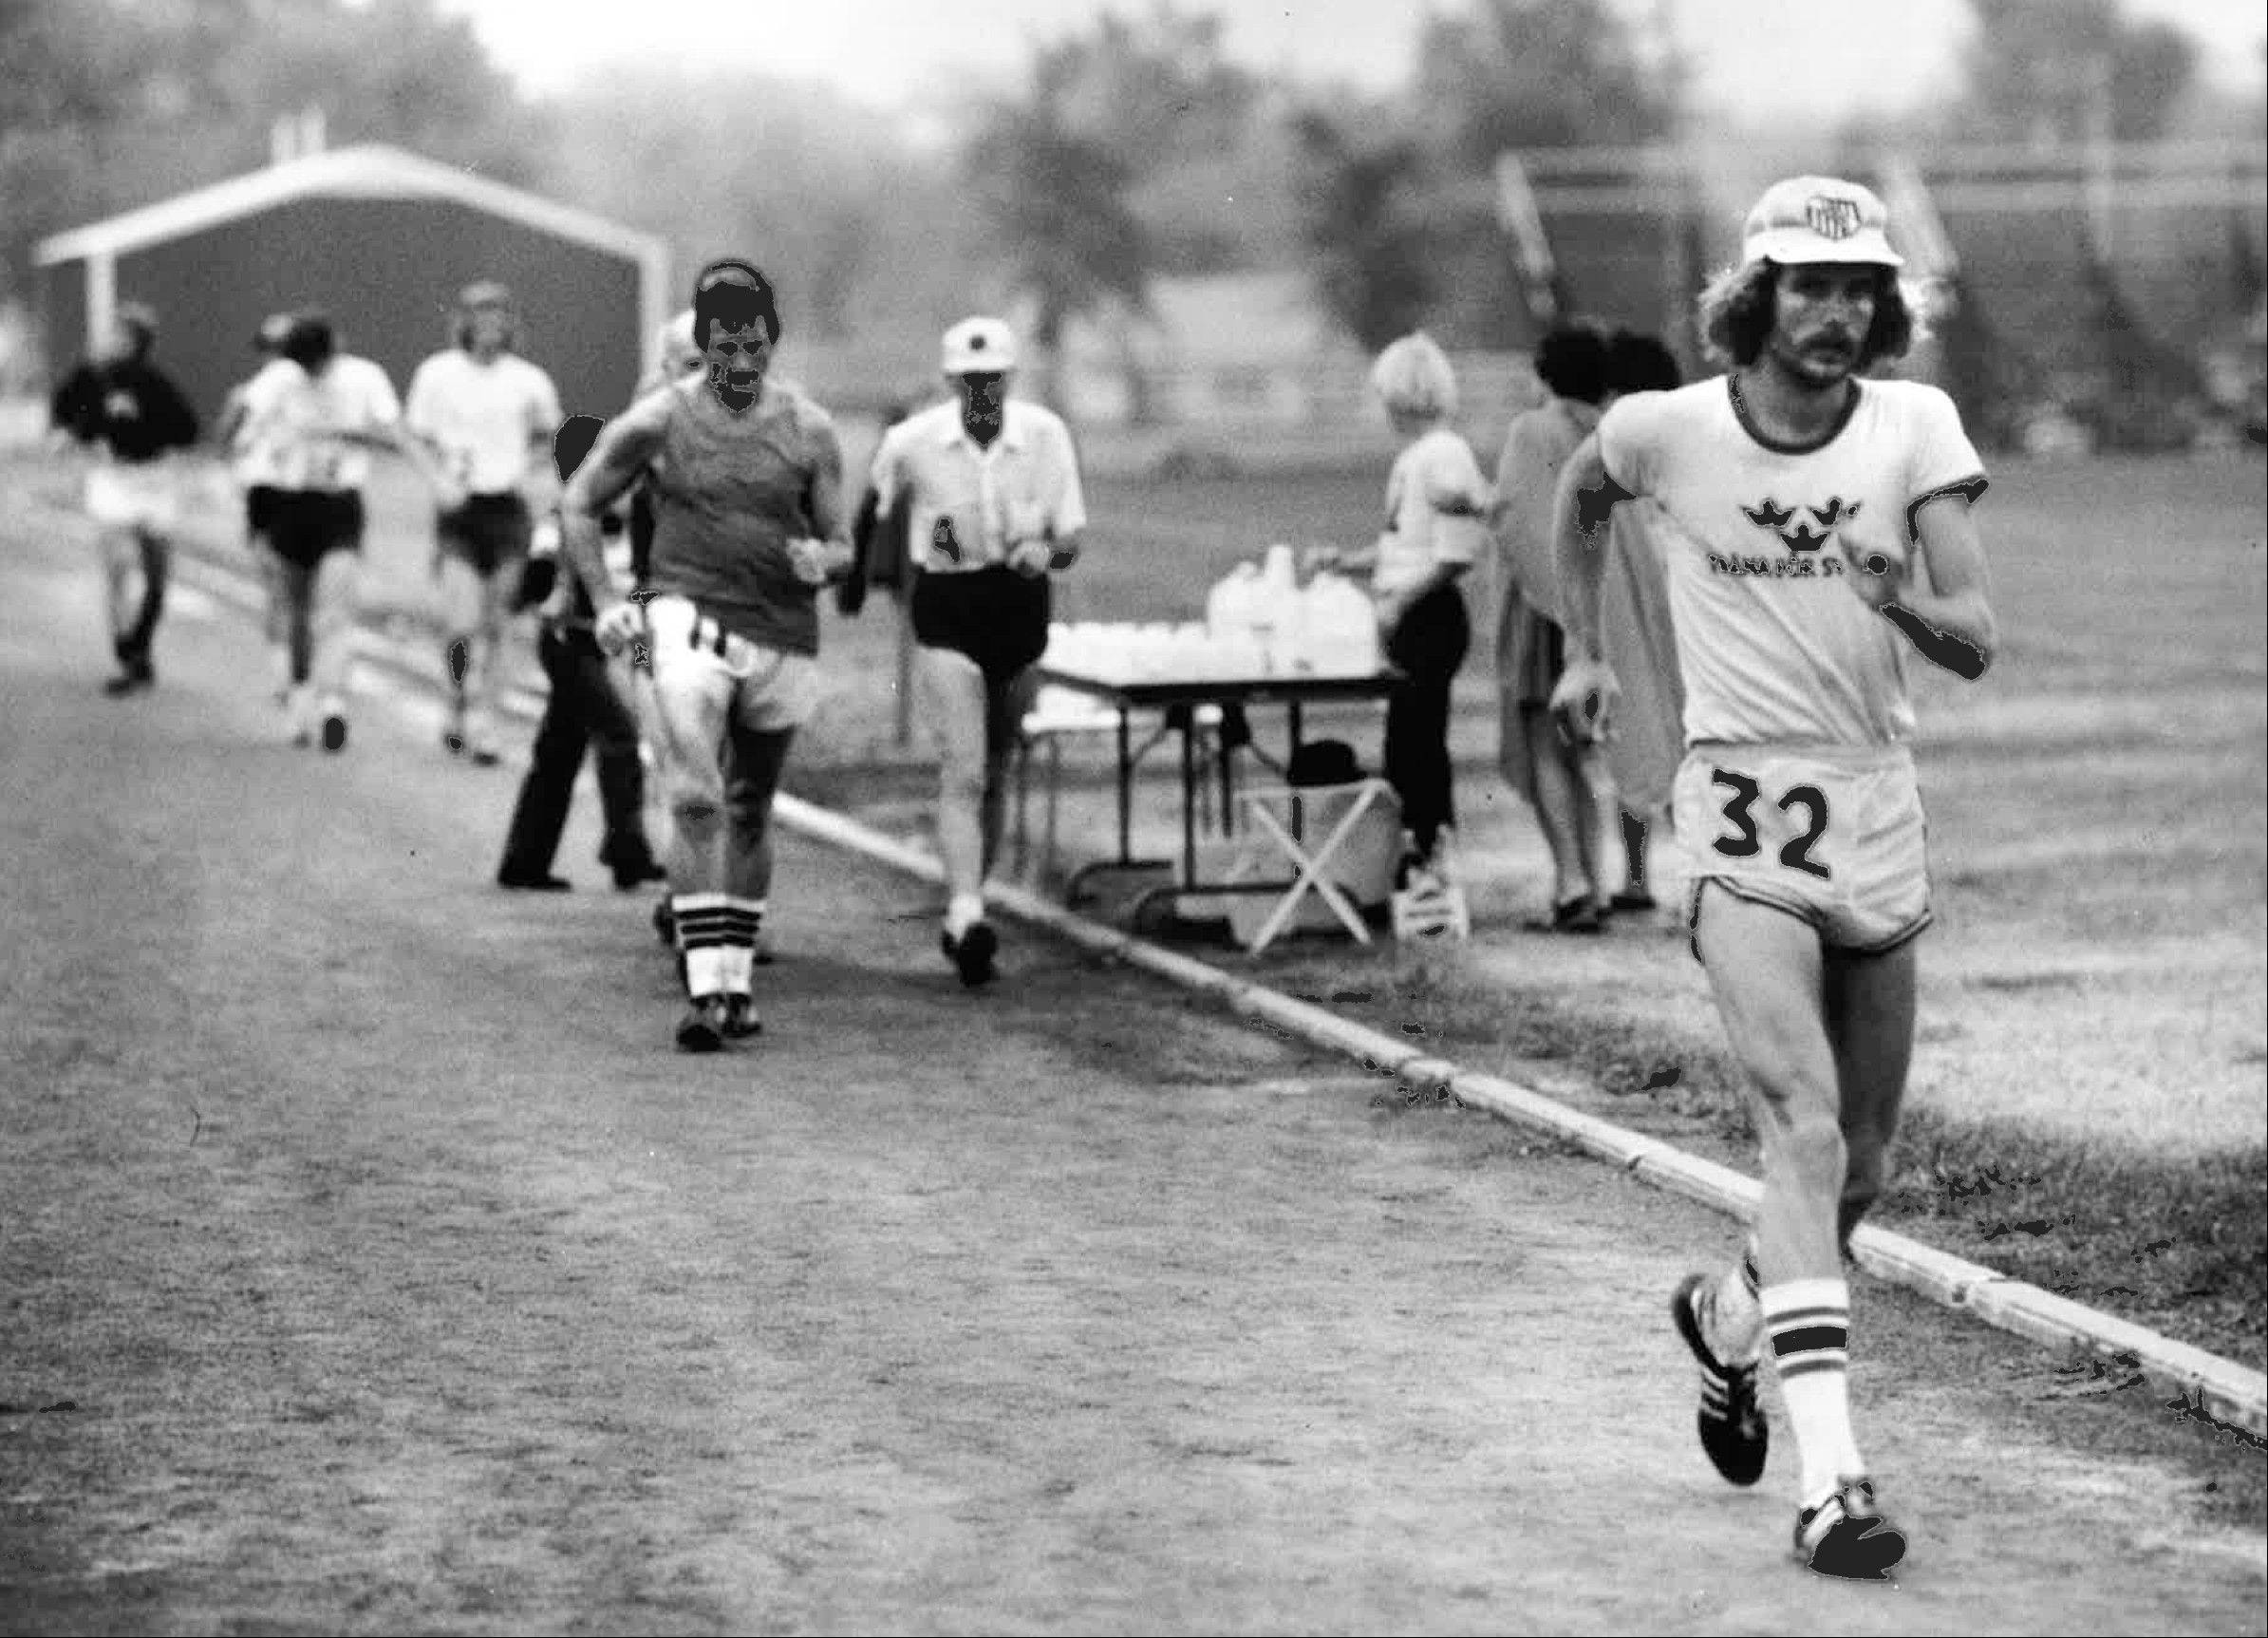 On his way to winning the national championship 100-mile racewalk in 1976, Augie Hirt leads defending champion Chuck Hunter, left, and American record-holder Larry O'Neil. Only 25, Hirt credits Hunter's taunting for inspiring him to keep going.